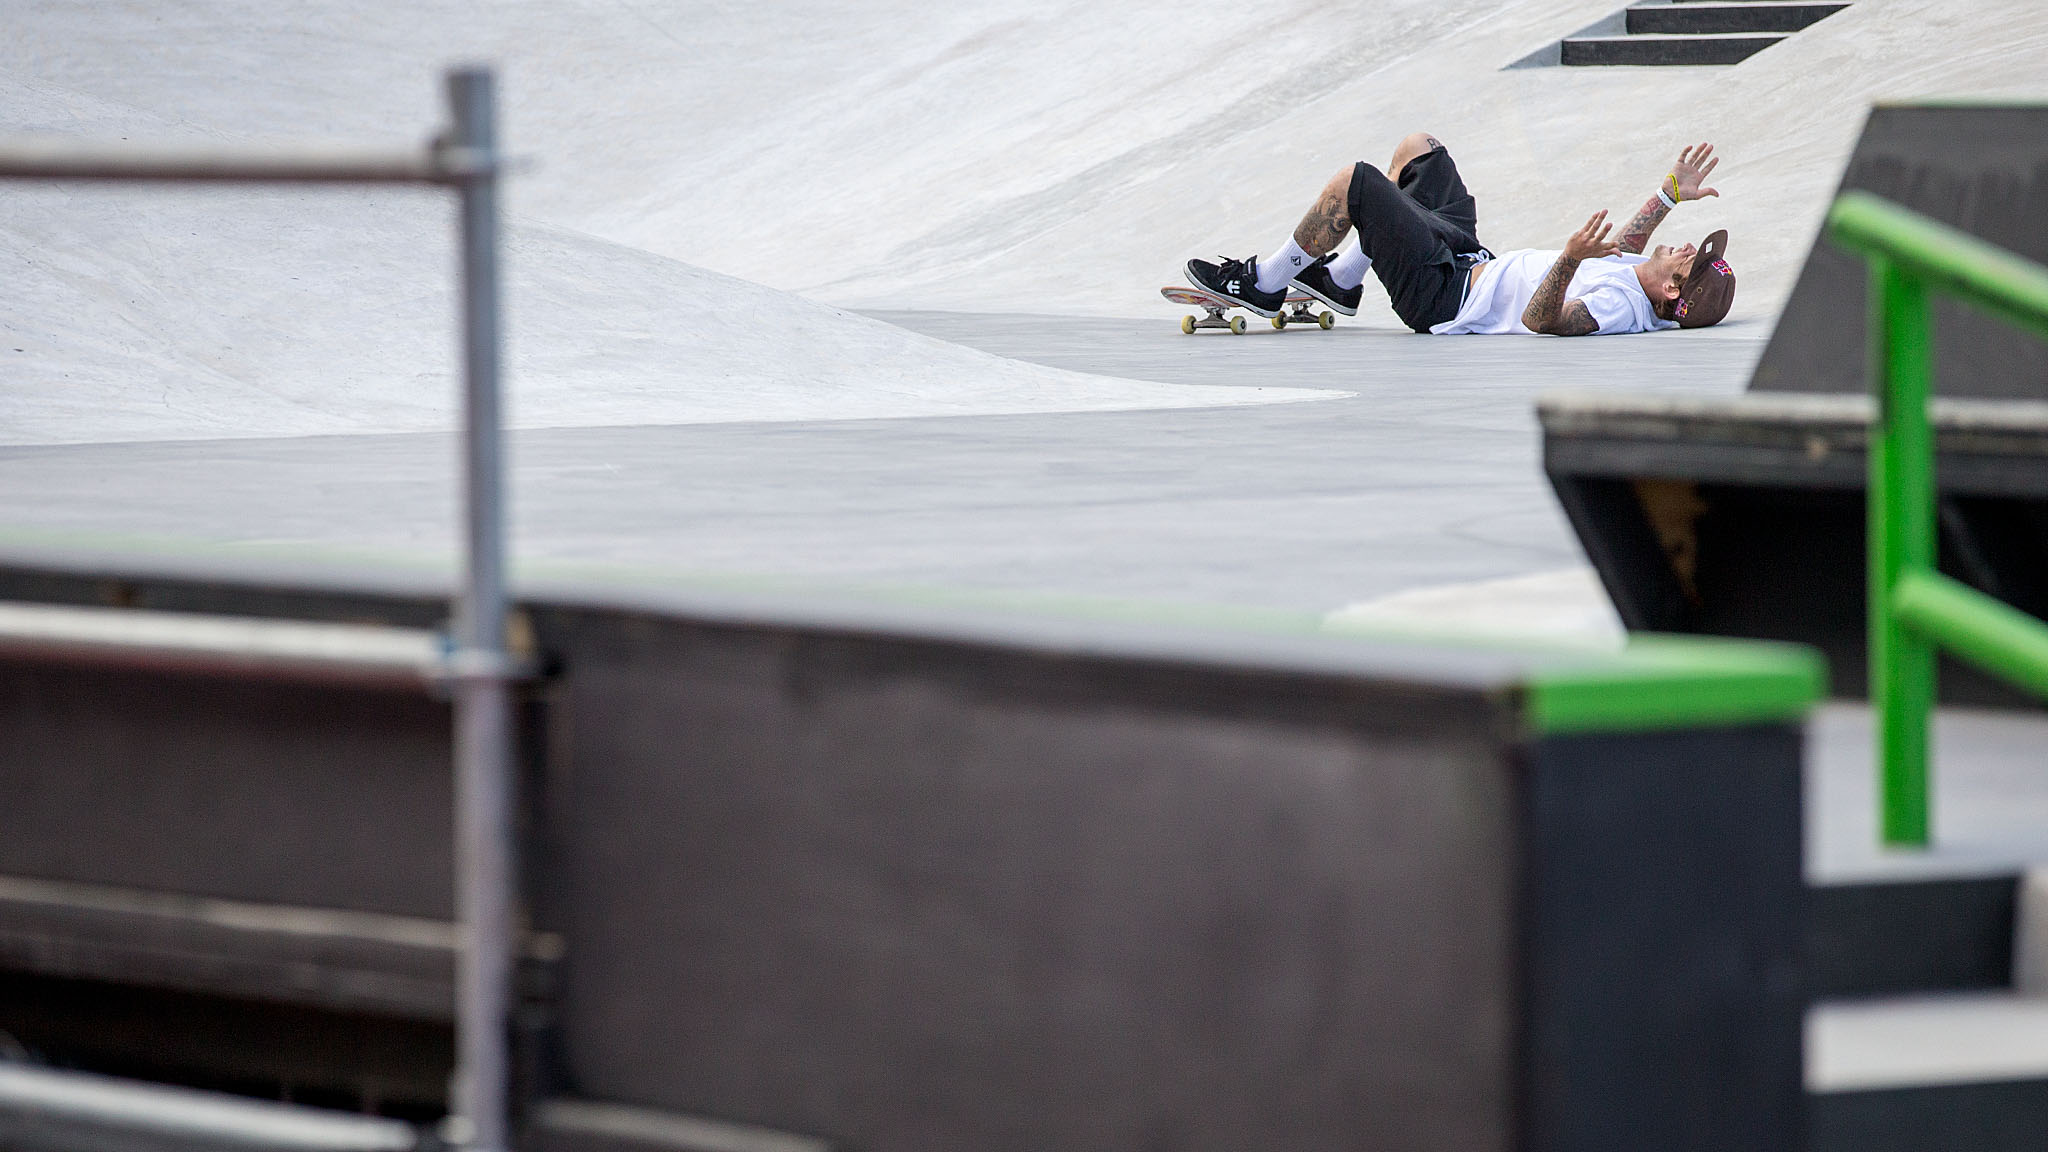 Ryan Sheckler was the top qualifier in Friday's elimination round but had a tougher time on Sunday. His last Round 1 run earned him the last qualifying spot into the six-man final, but he ultimately finished just off the podium behind Nyjah Huston, Luan Oliveira and X Games rookie Alec Majerus.